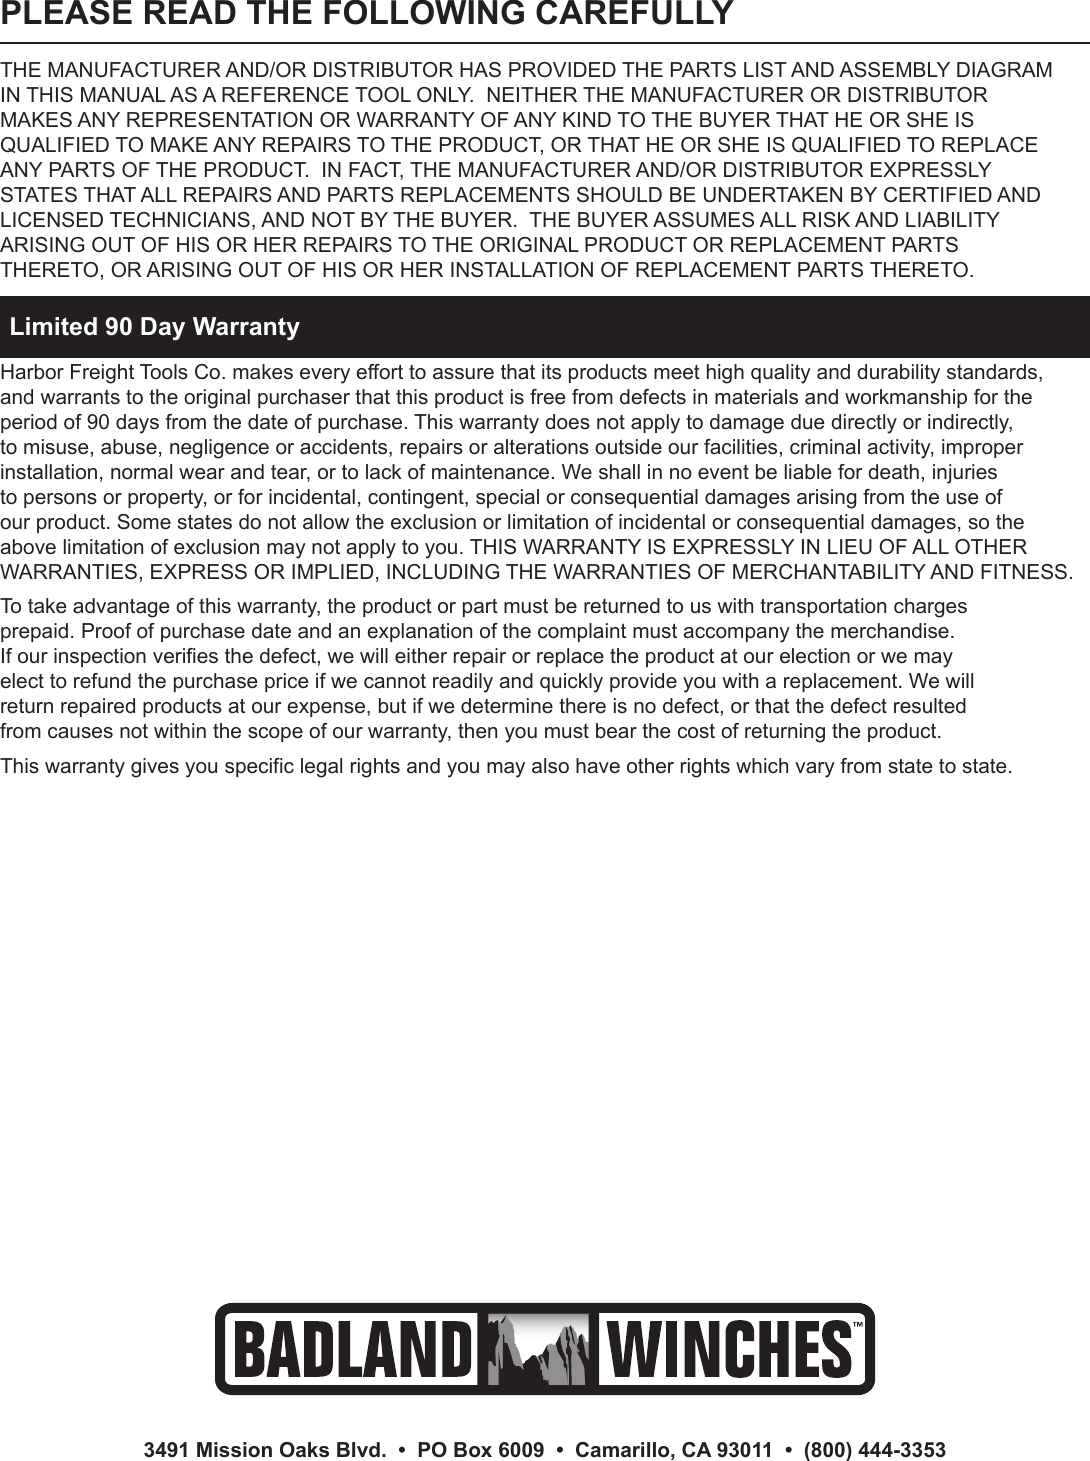 hight resolution of page 12 of 12 harbor freight harbor freight 96127 owner